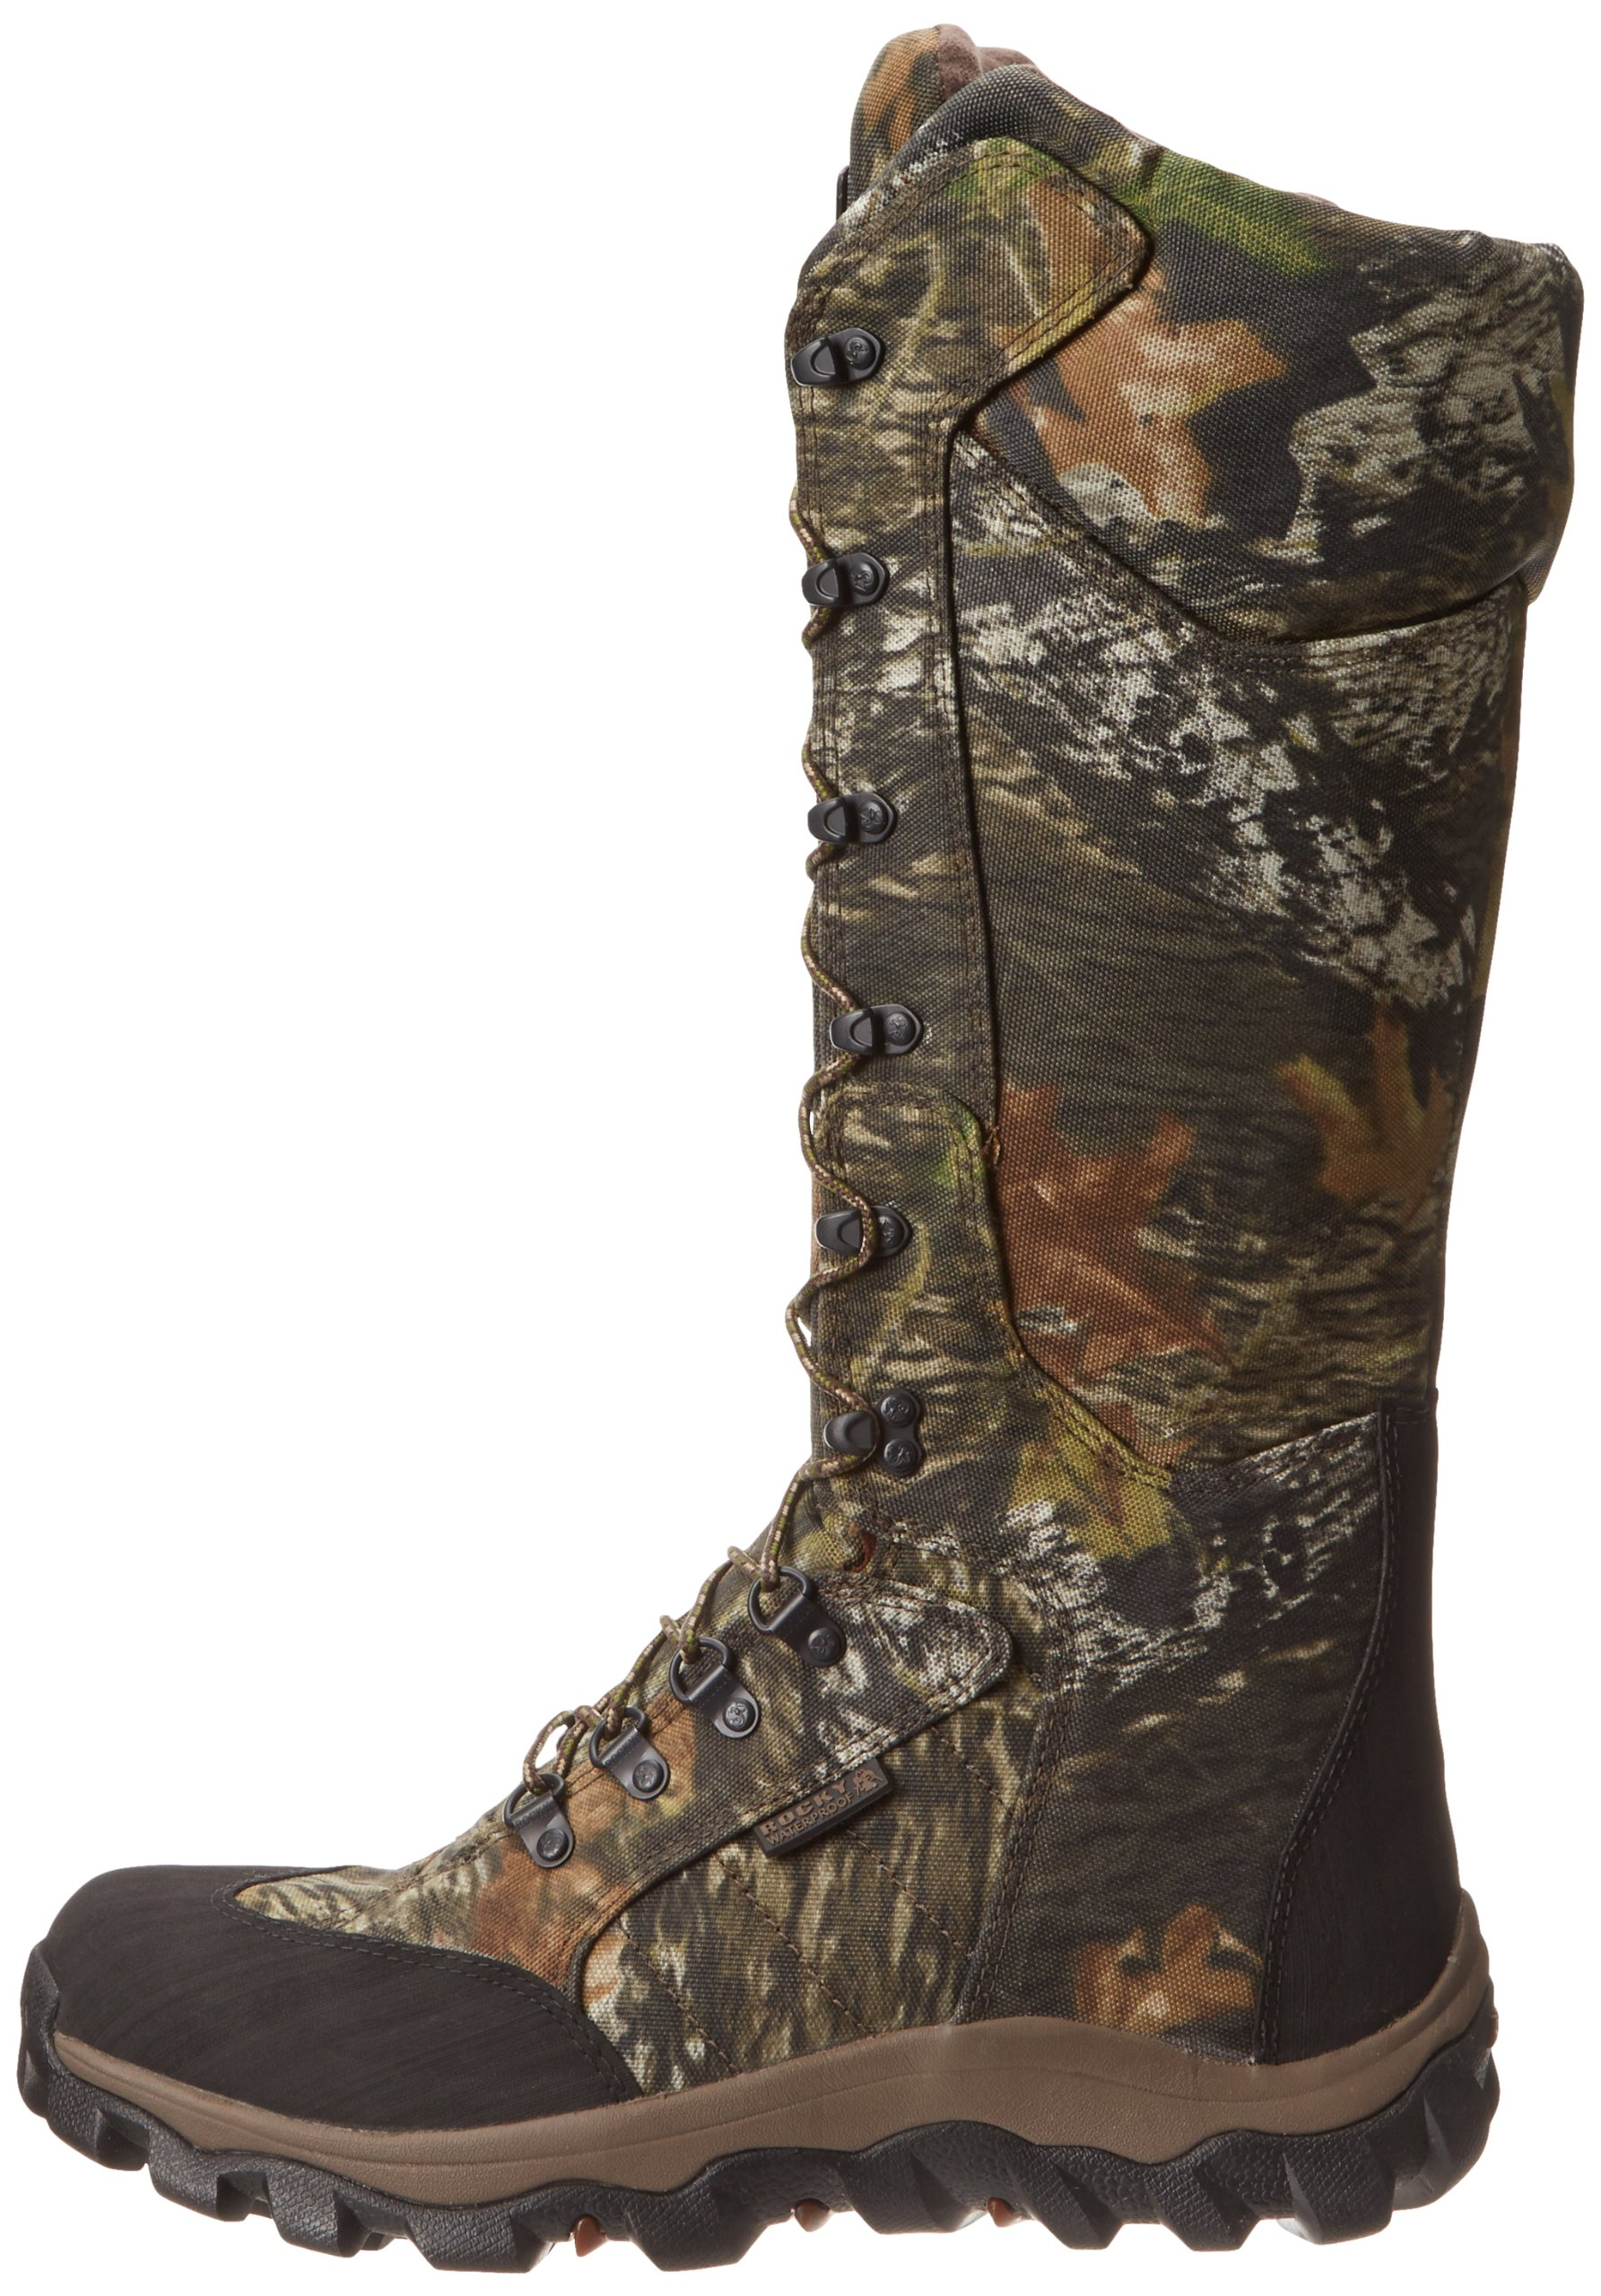 Rocky Men's Lynx Snake Boot Hunting Boot,Mobu,10 M US by Rocky (Image #5)